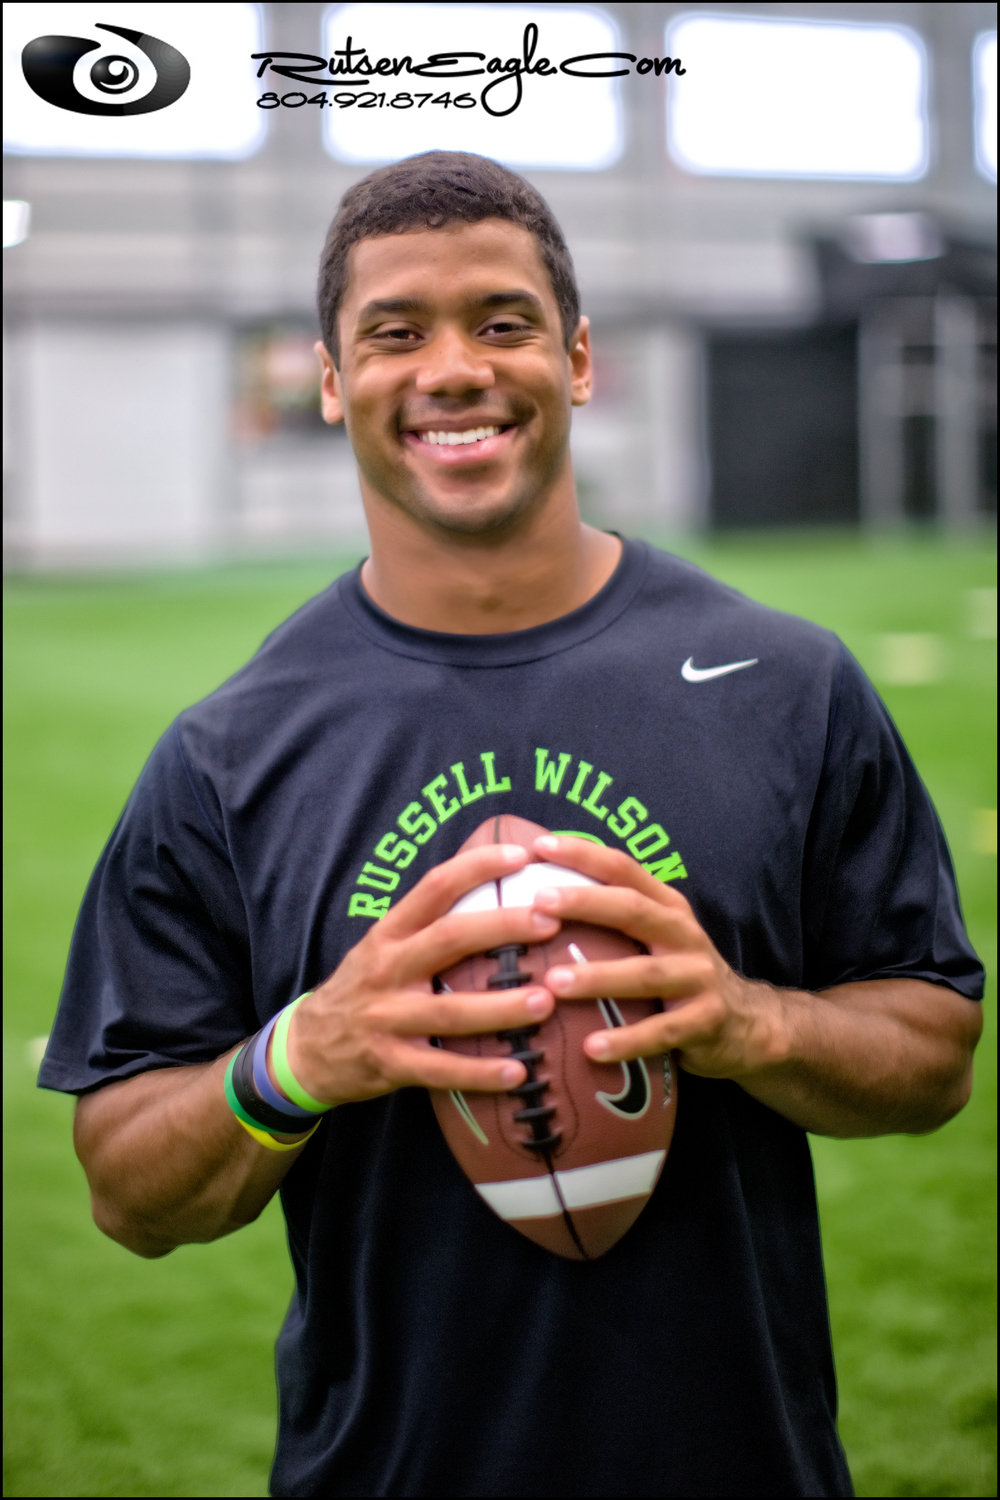 Russell Wilson: The Russell Wilson Passing Academy